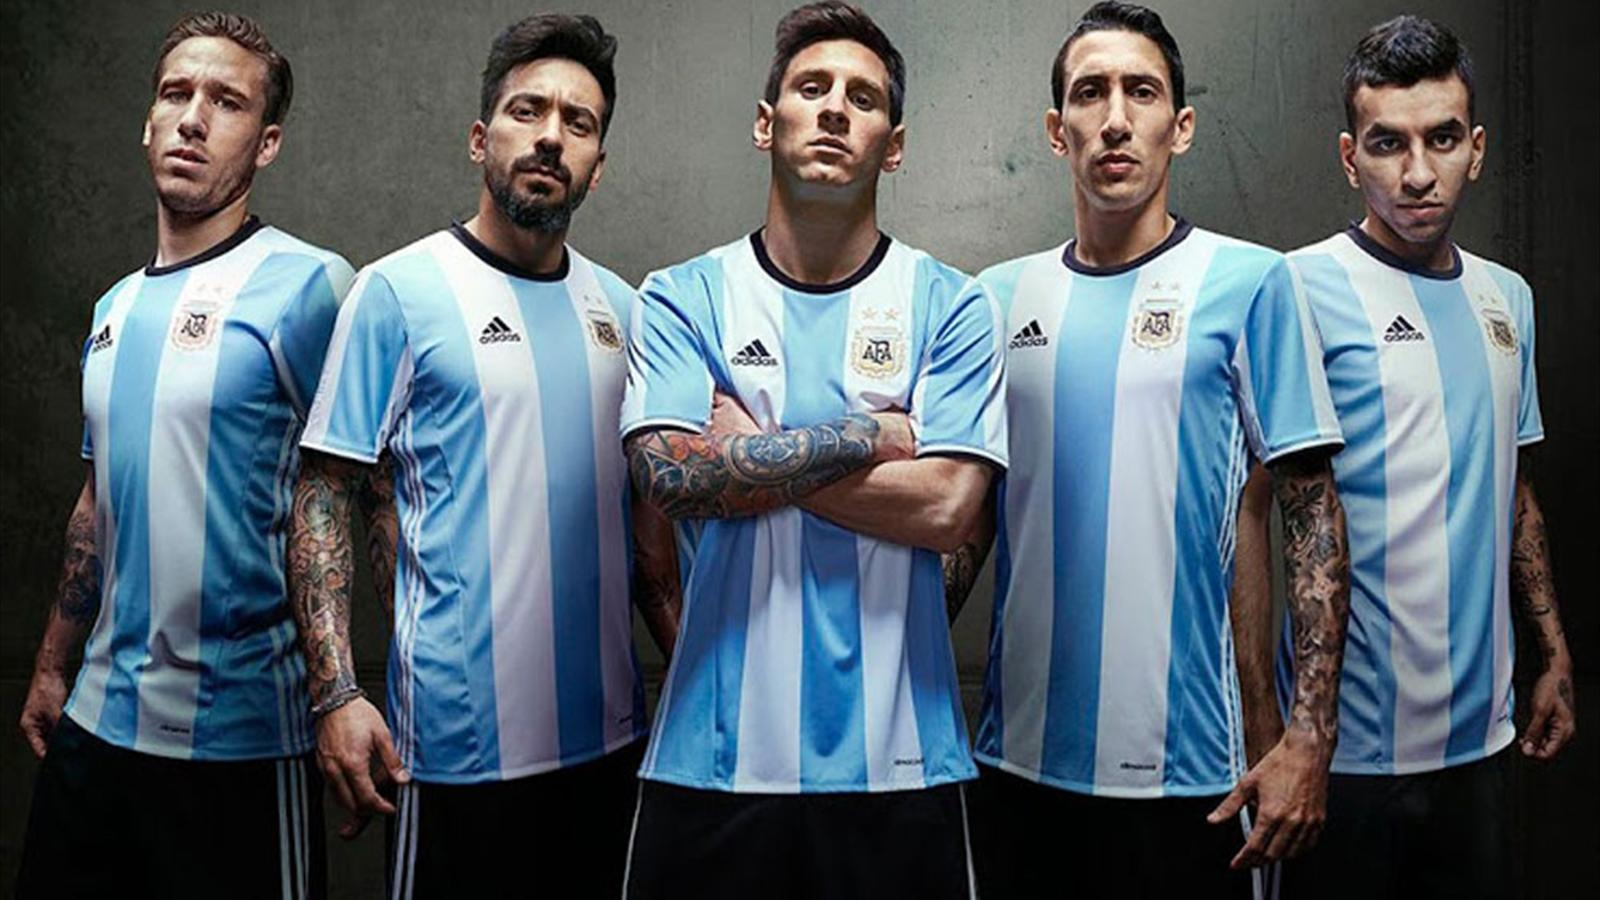 Yükle (1600x900)Argentina Reveals 2016 adidas Home Jersey -  Soccer365Argentina Reveals 2016 adidas Home Jersey. Dream League Soccer ... 301d5ee16